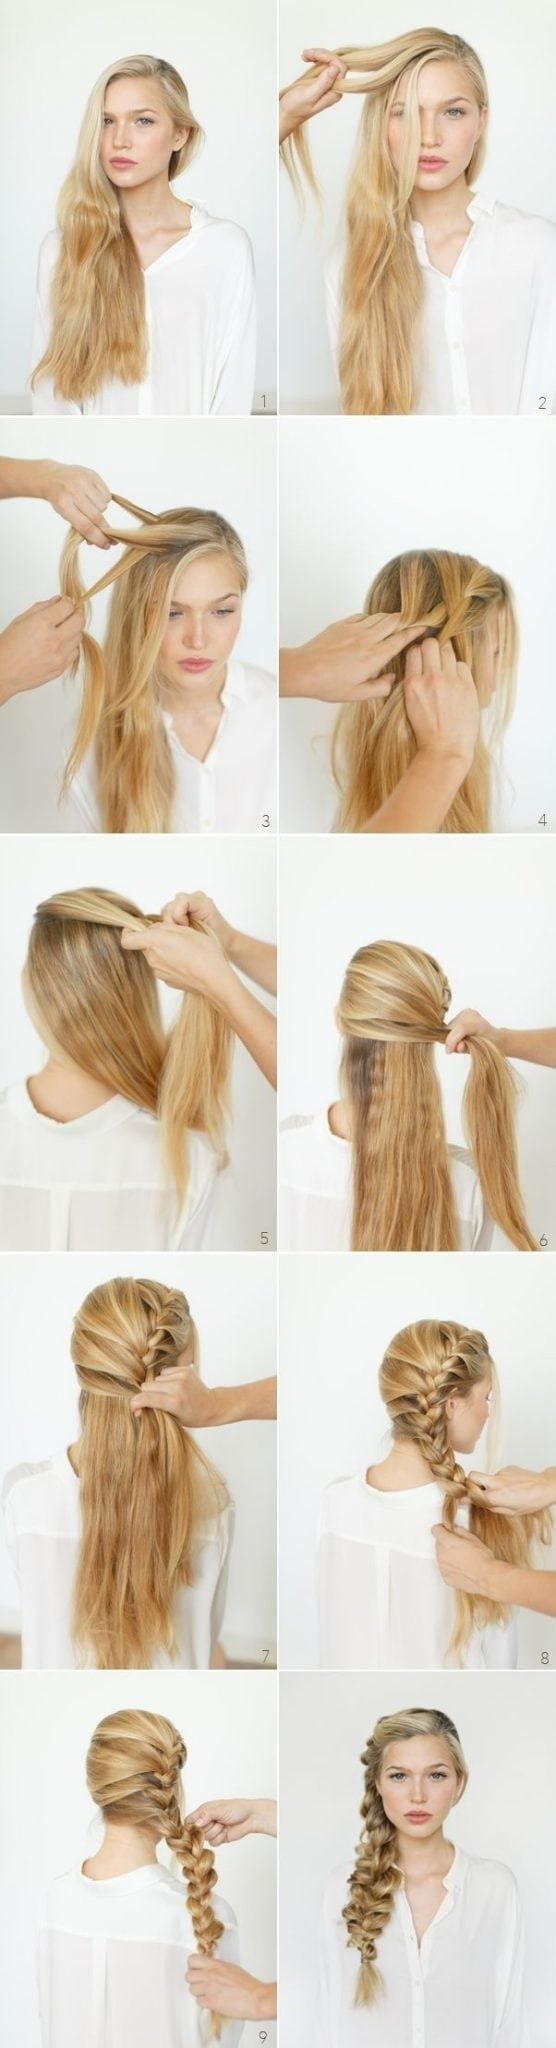 [ad_1]  8 Cute Braided Hairstyles for Girls: Long Hair Ideas 2014 – 2015: Source by ilsz1990 [ad_2]  …